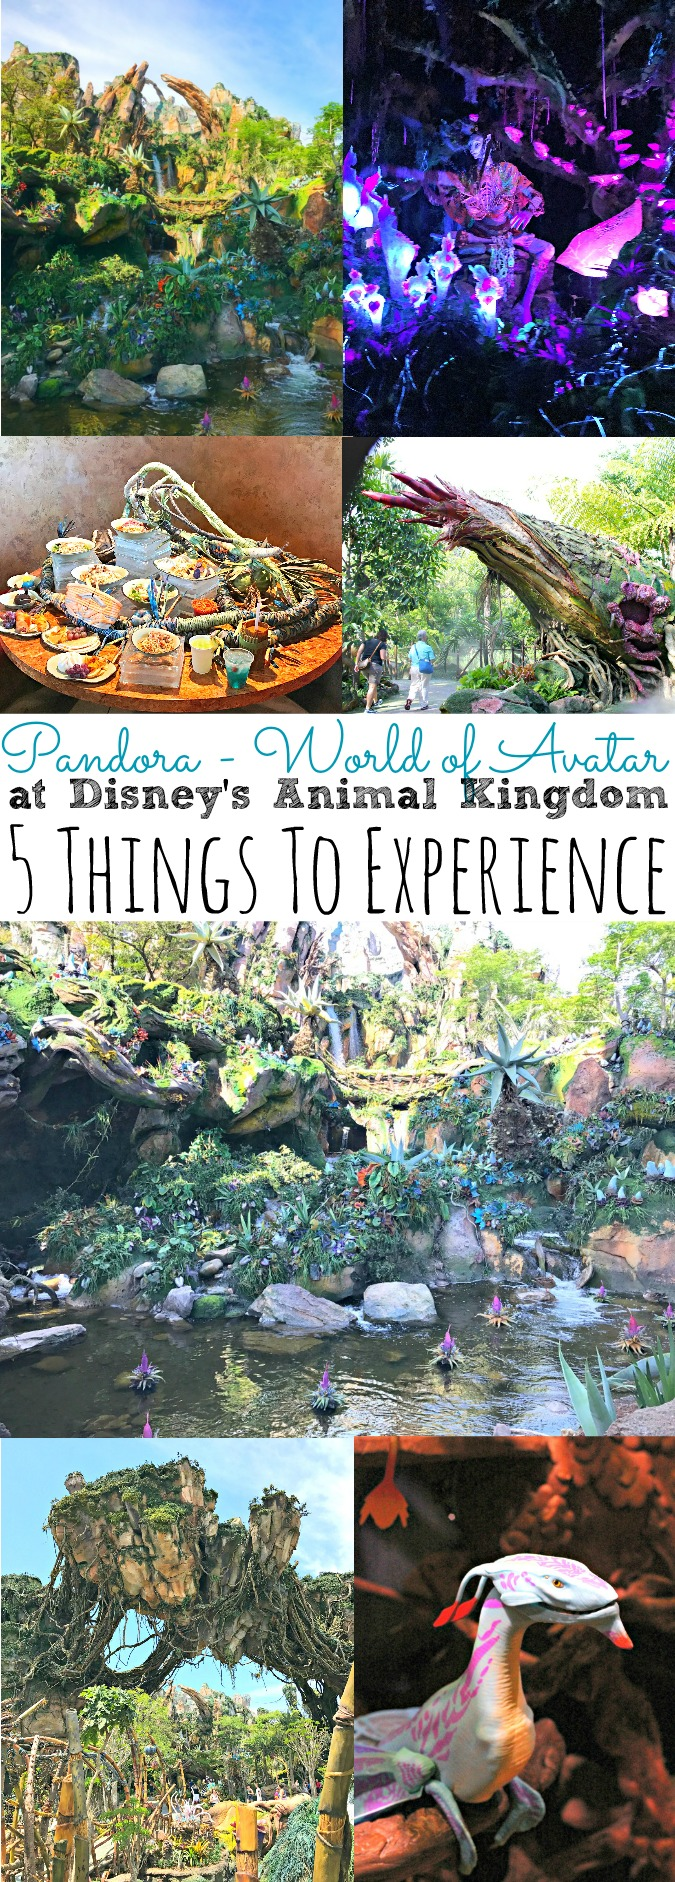 Pandora - World of Avatar at Disney's Animal Kingdom | 5 Things To Experience - simplytodaylife.com